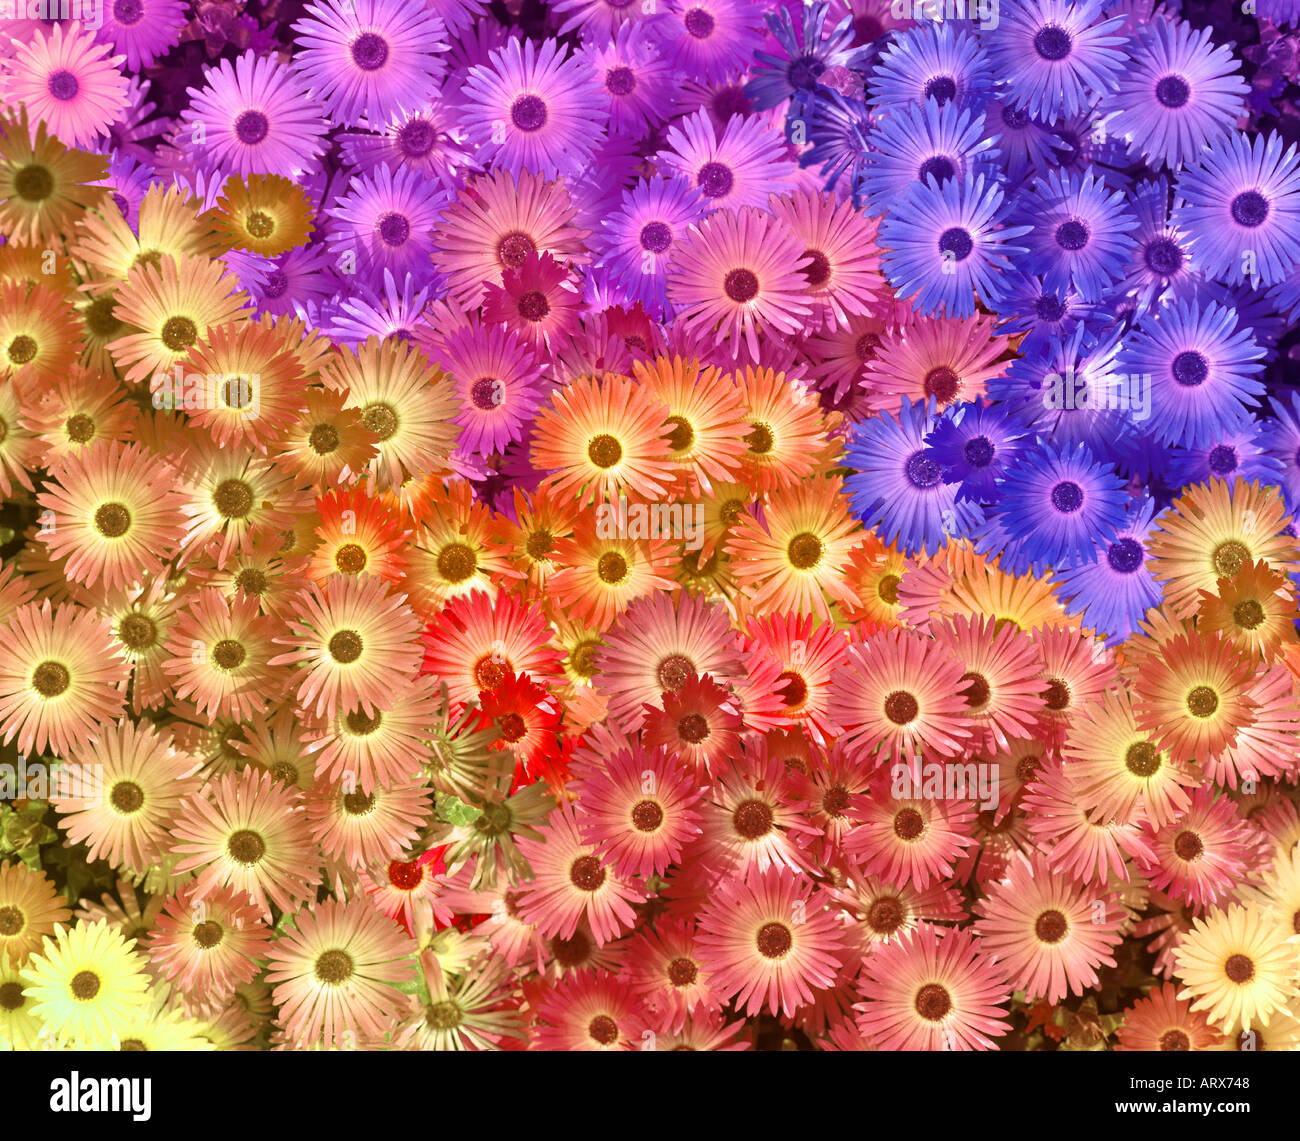 DIGITAL ART: Floral Display - Stock Image